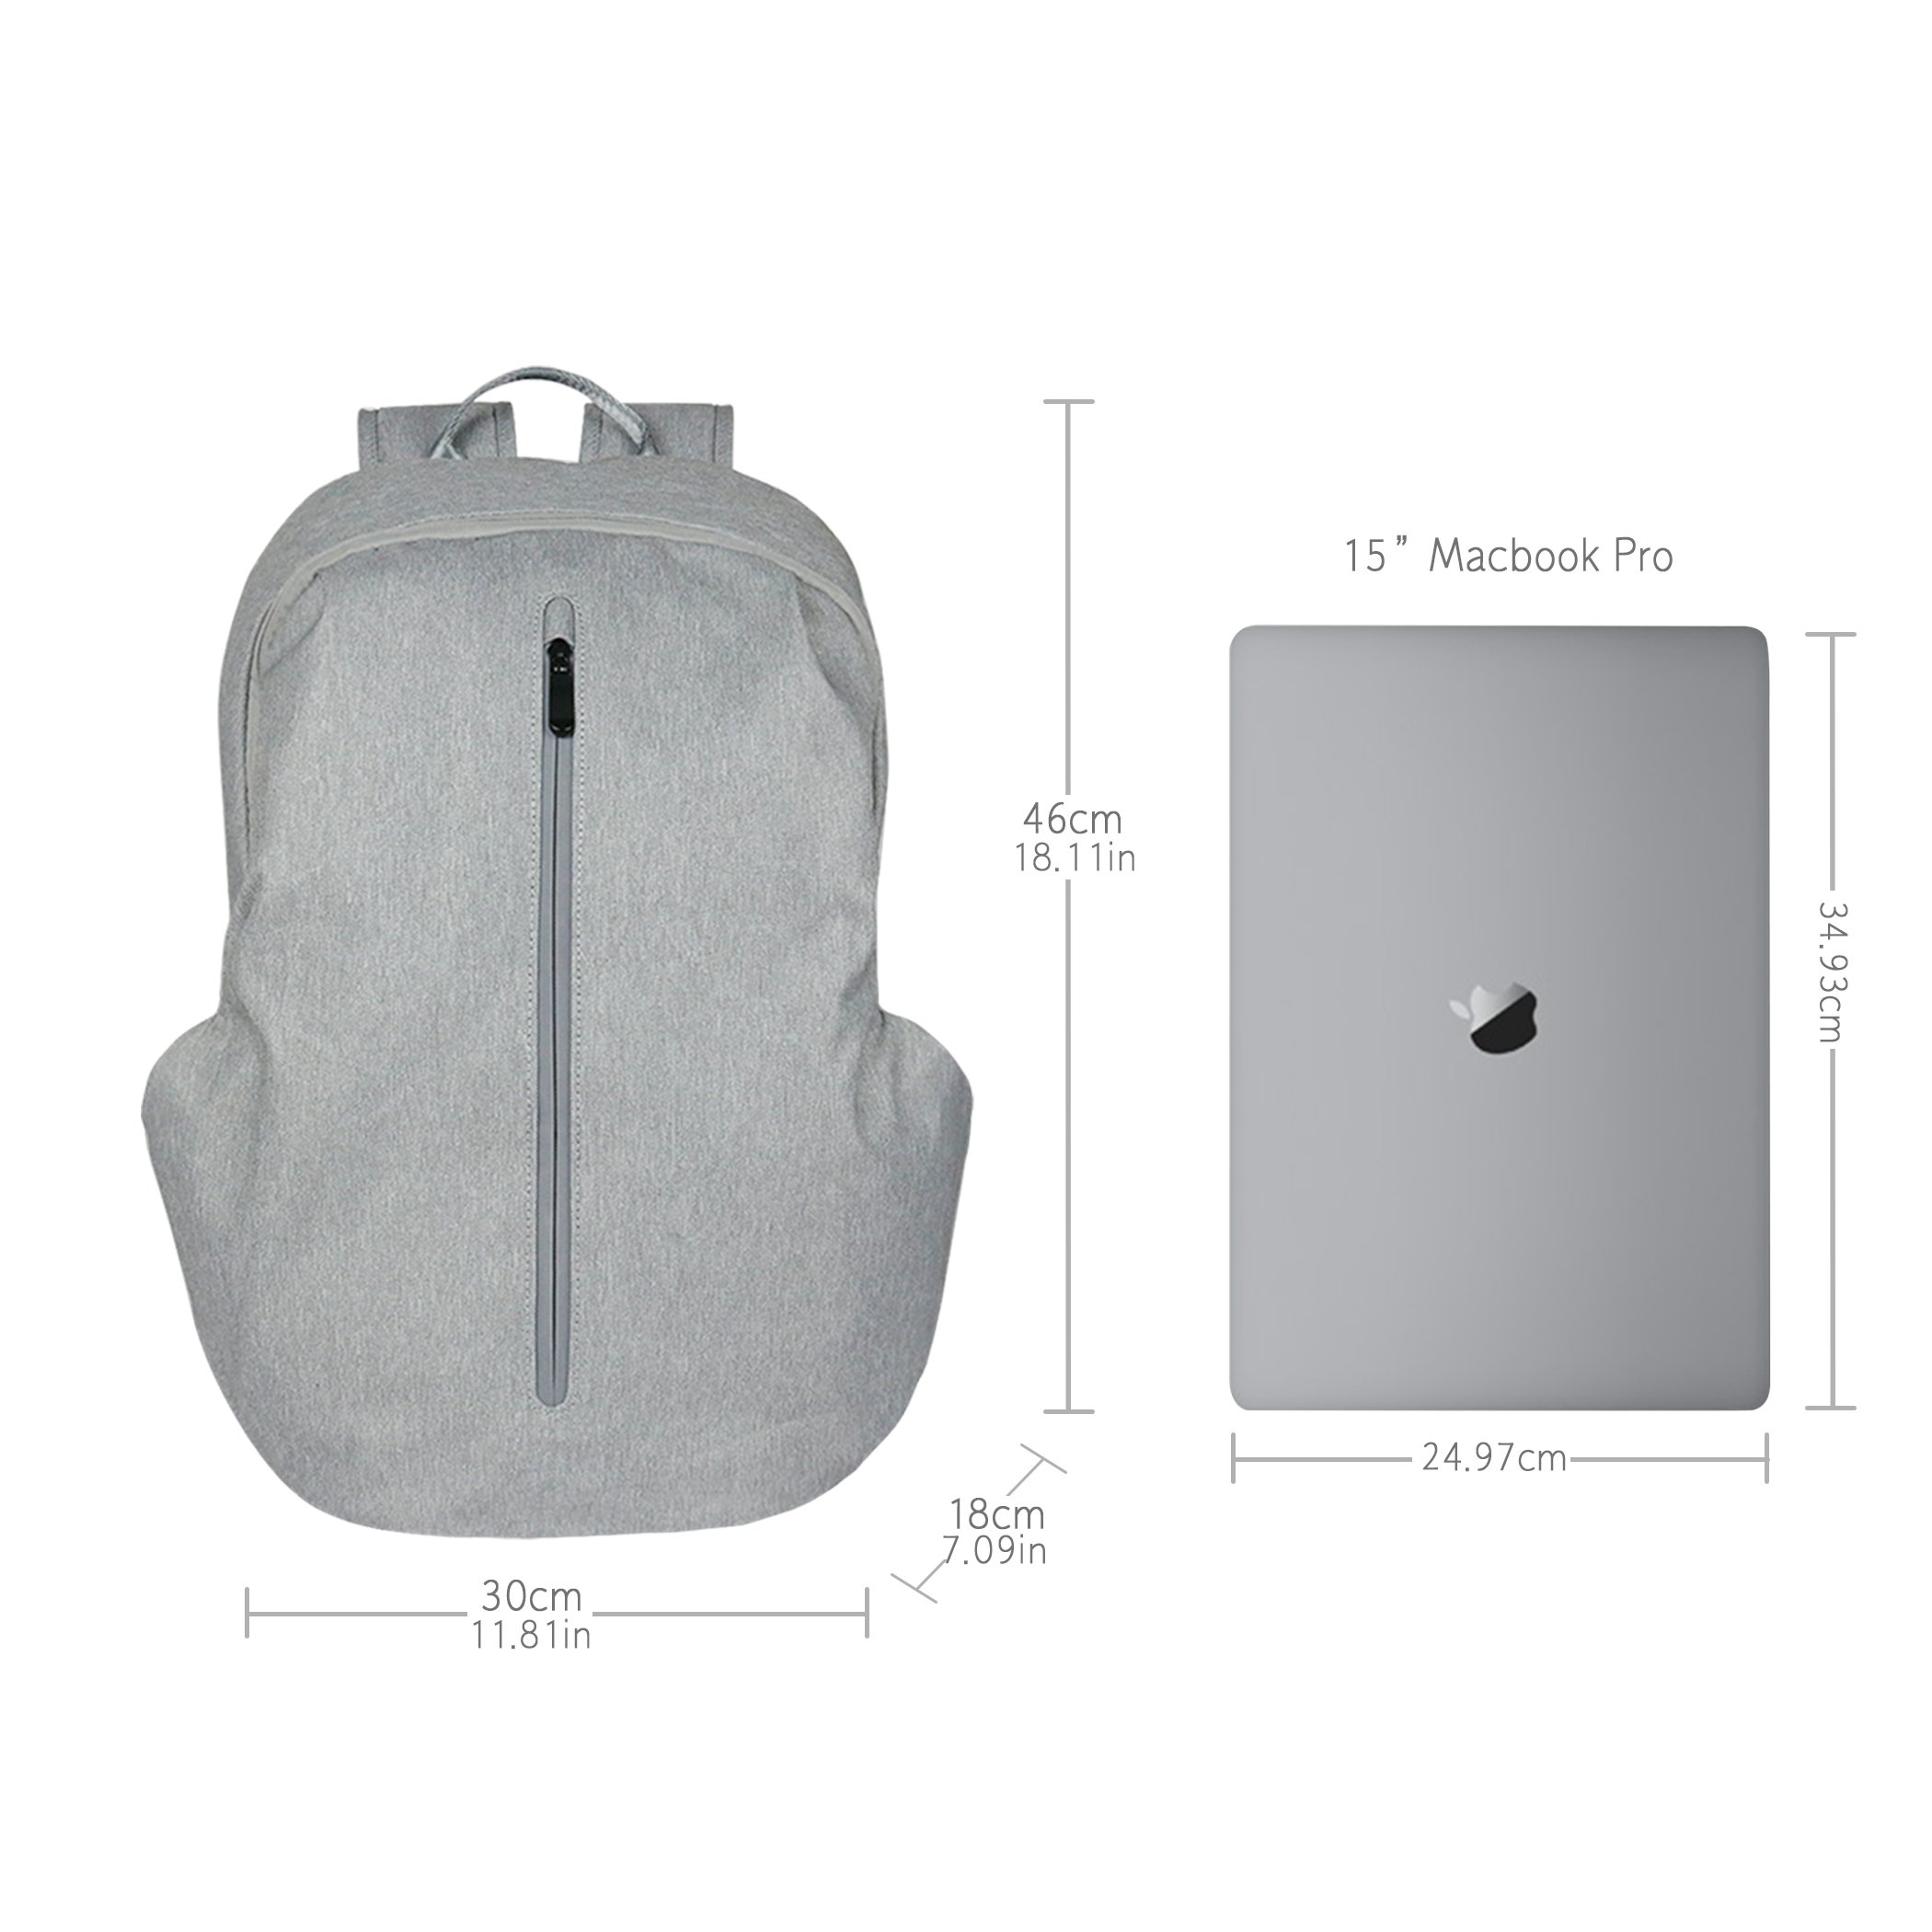 Tektalk Business Anti-theft Multifunctional Laptop Backpack, with USB Cable and Coded Lock, Durable & Lightweight, Suitable for Laptops up to 15.6 inches, for School / Travel / Work (Light Gray) by Tektalk (Image #3)